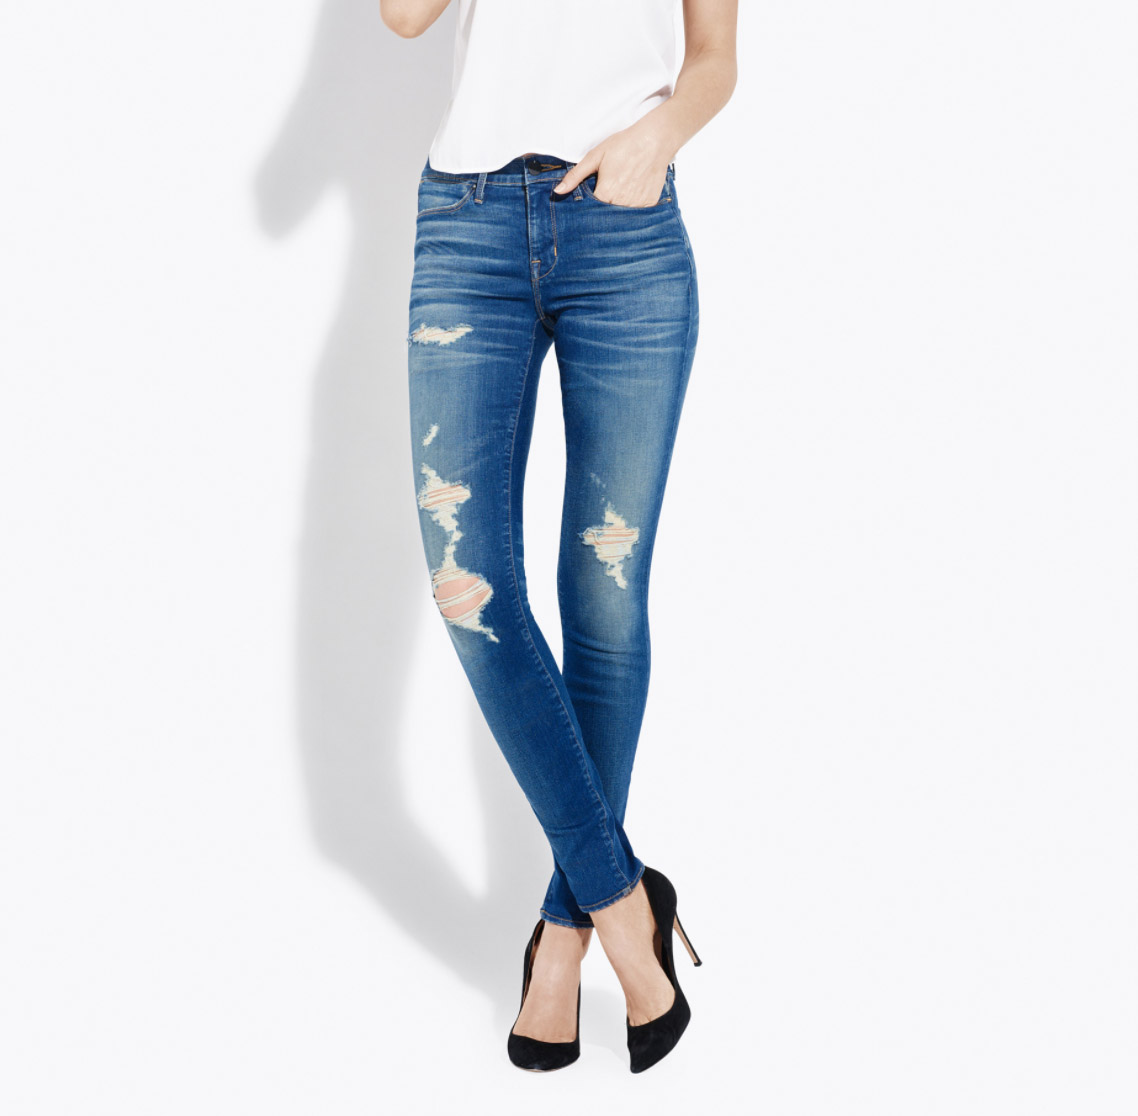 Top 14 Most Comfortable Jeans Brands Ever Designed - theFashionSpot